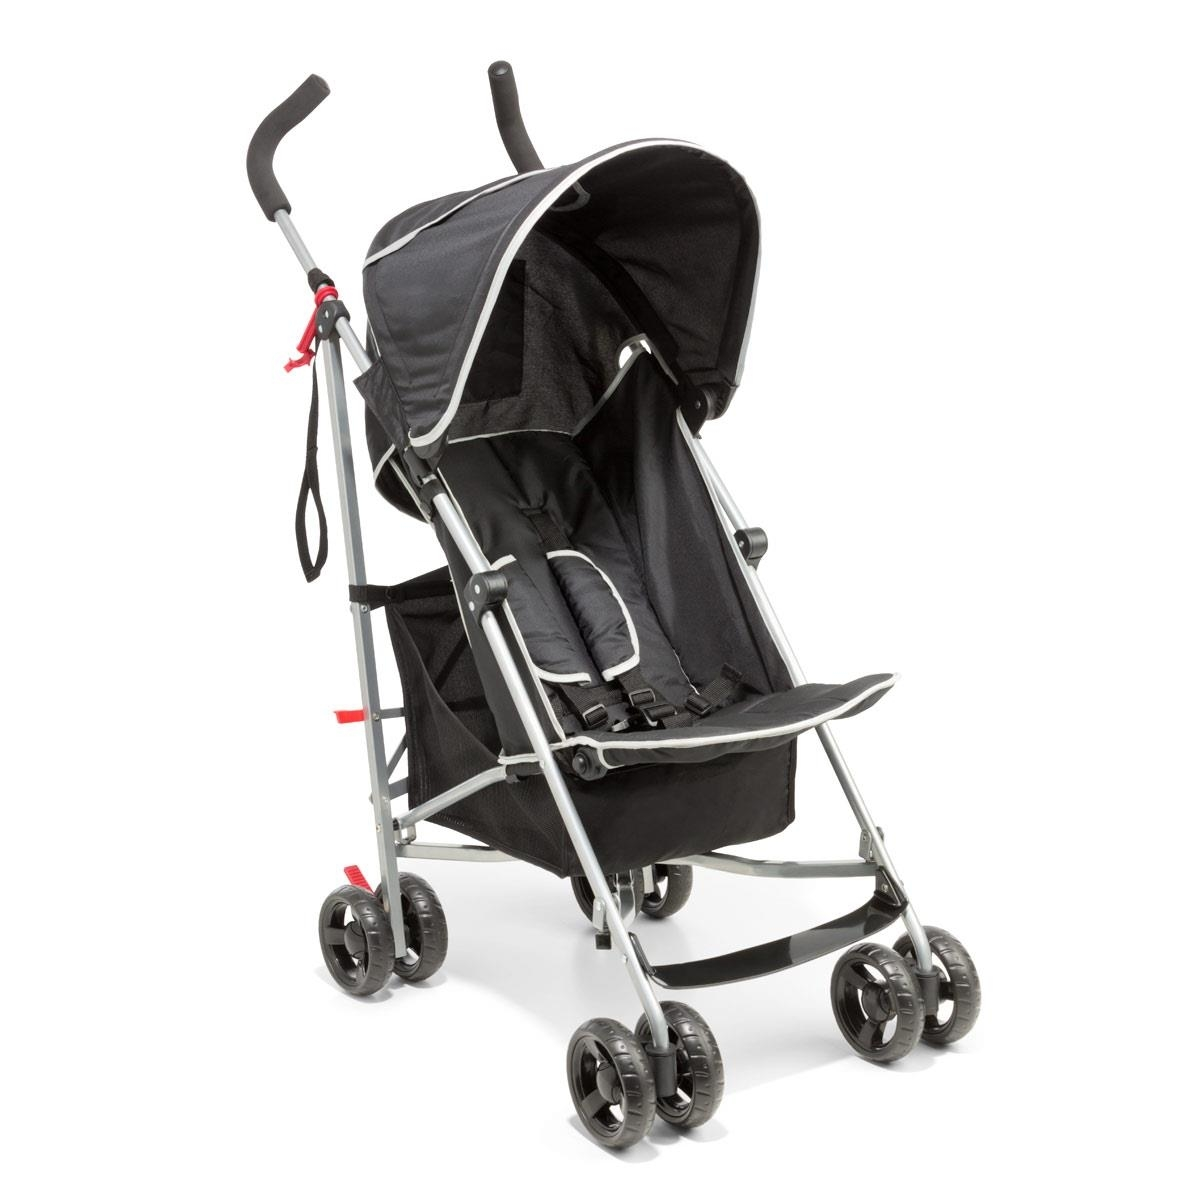 Kmart Layback Umbrella Stroller Questions & Answers ...